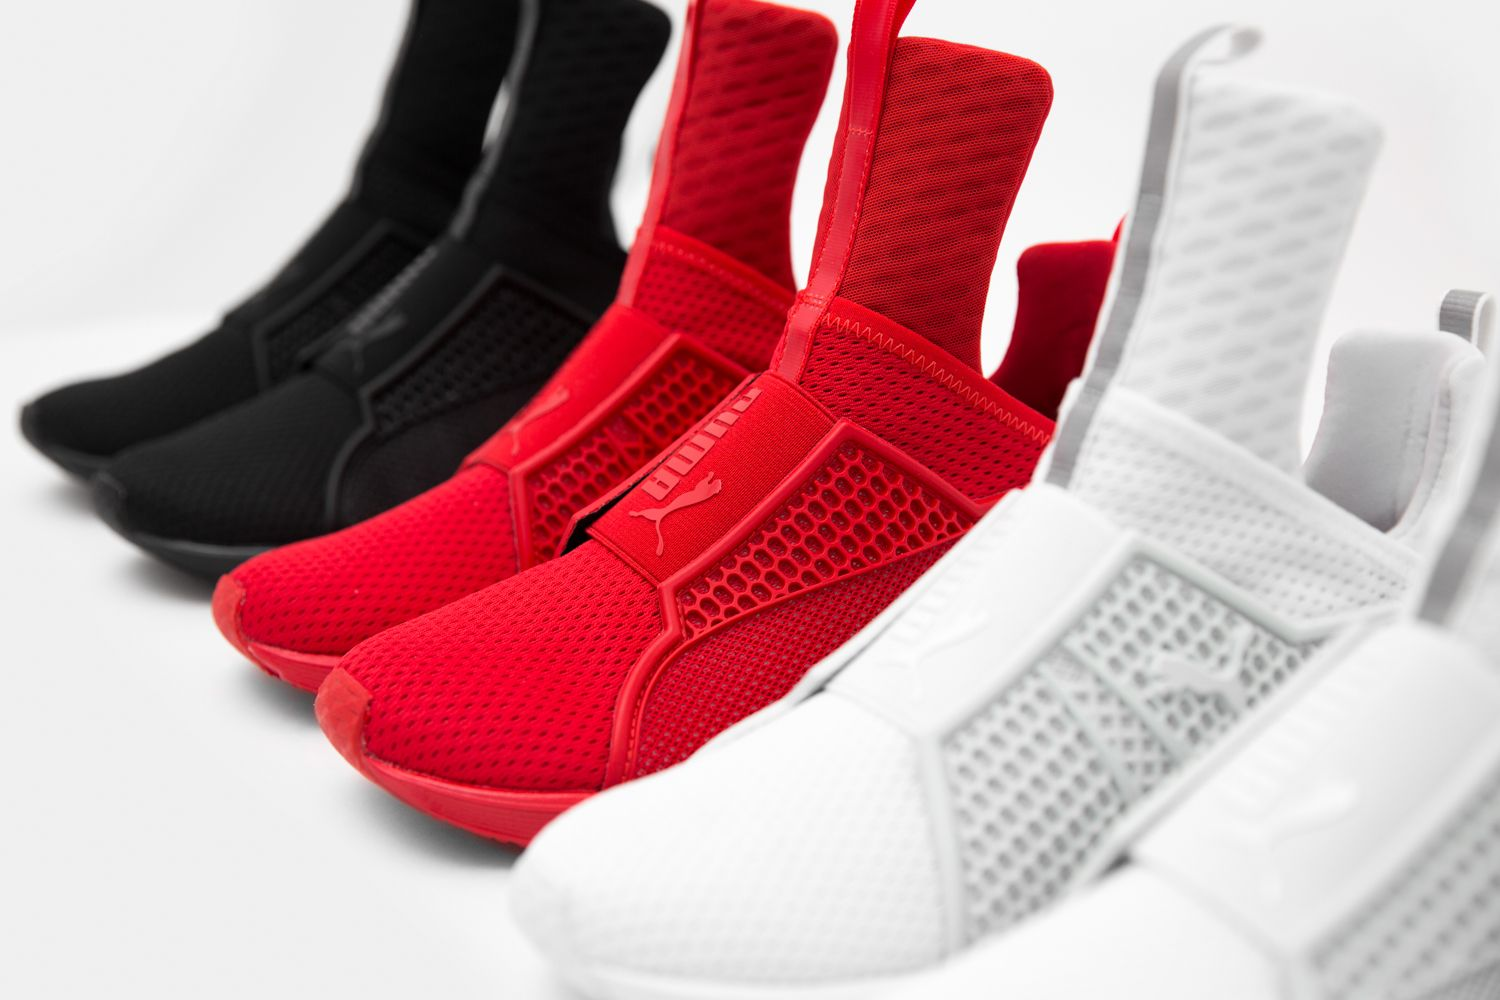 Puma (xRihanna) Fenty Trainer, the popularity of this sneaker is off the  scale, watch out for the fakes already being sold online.